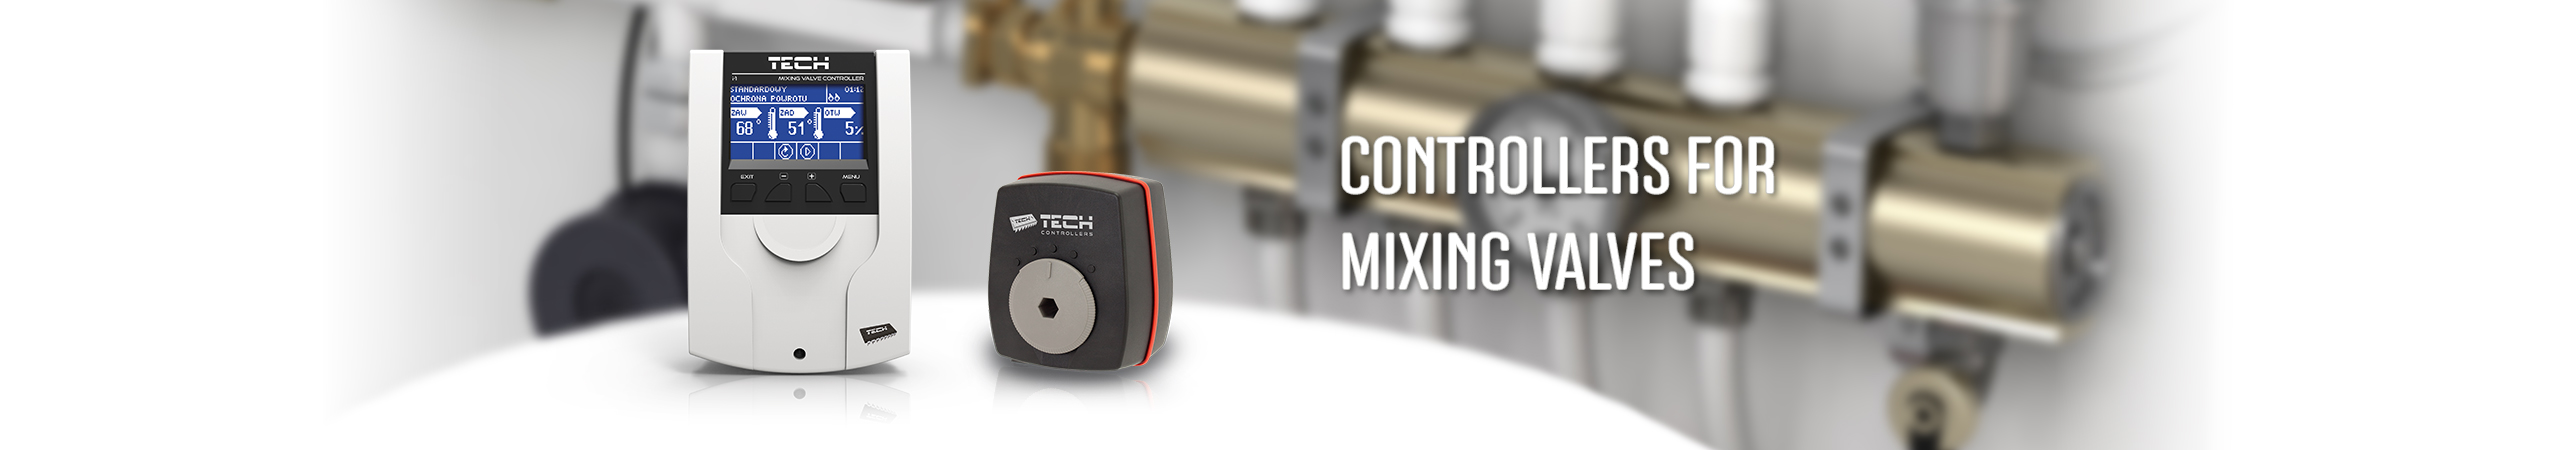 Mixing valves controlers - TECH Controllers - TECH Sterowniki